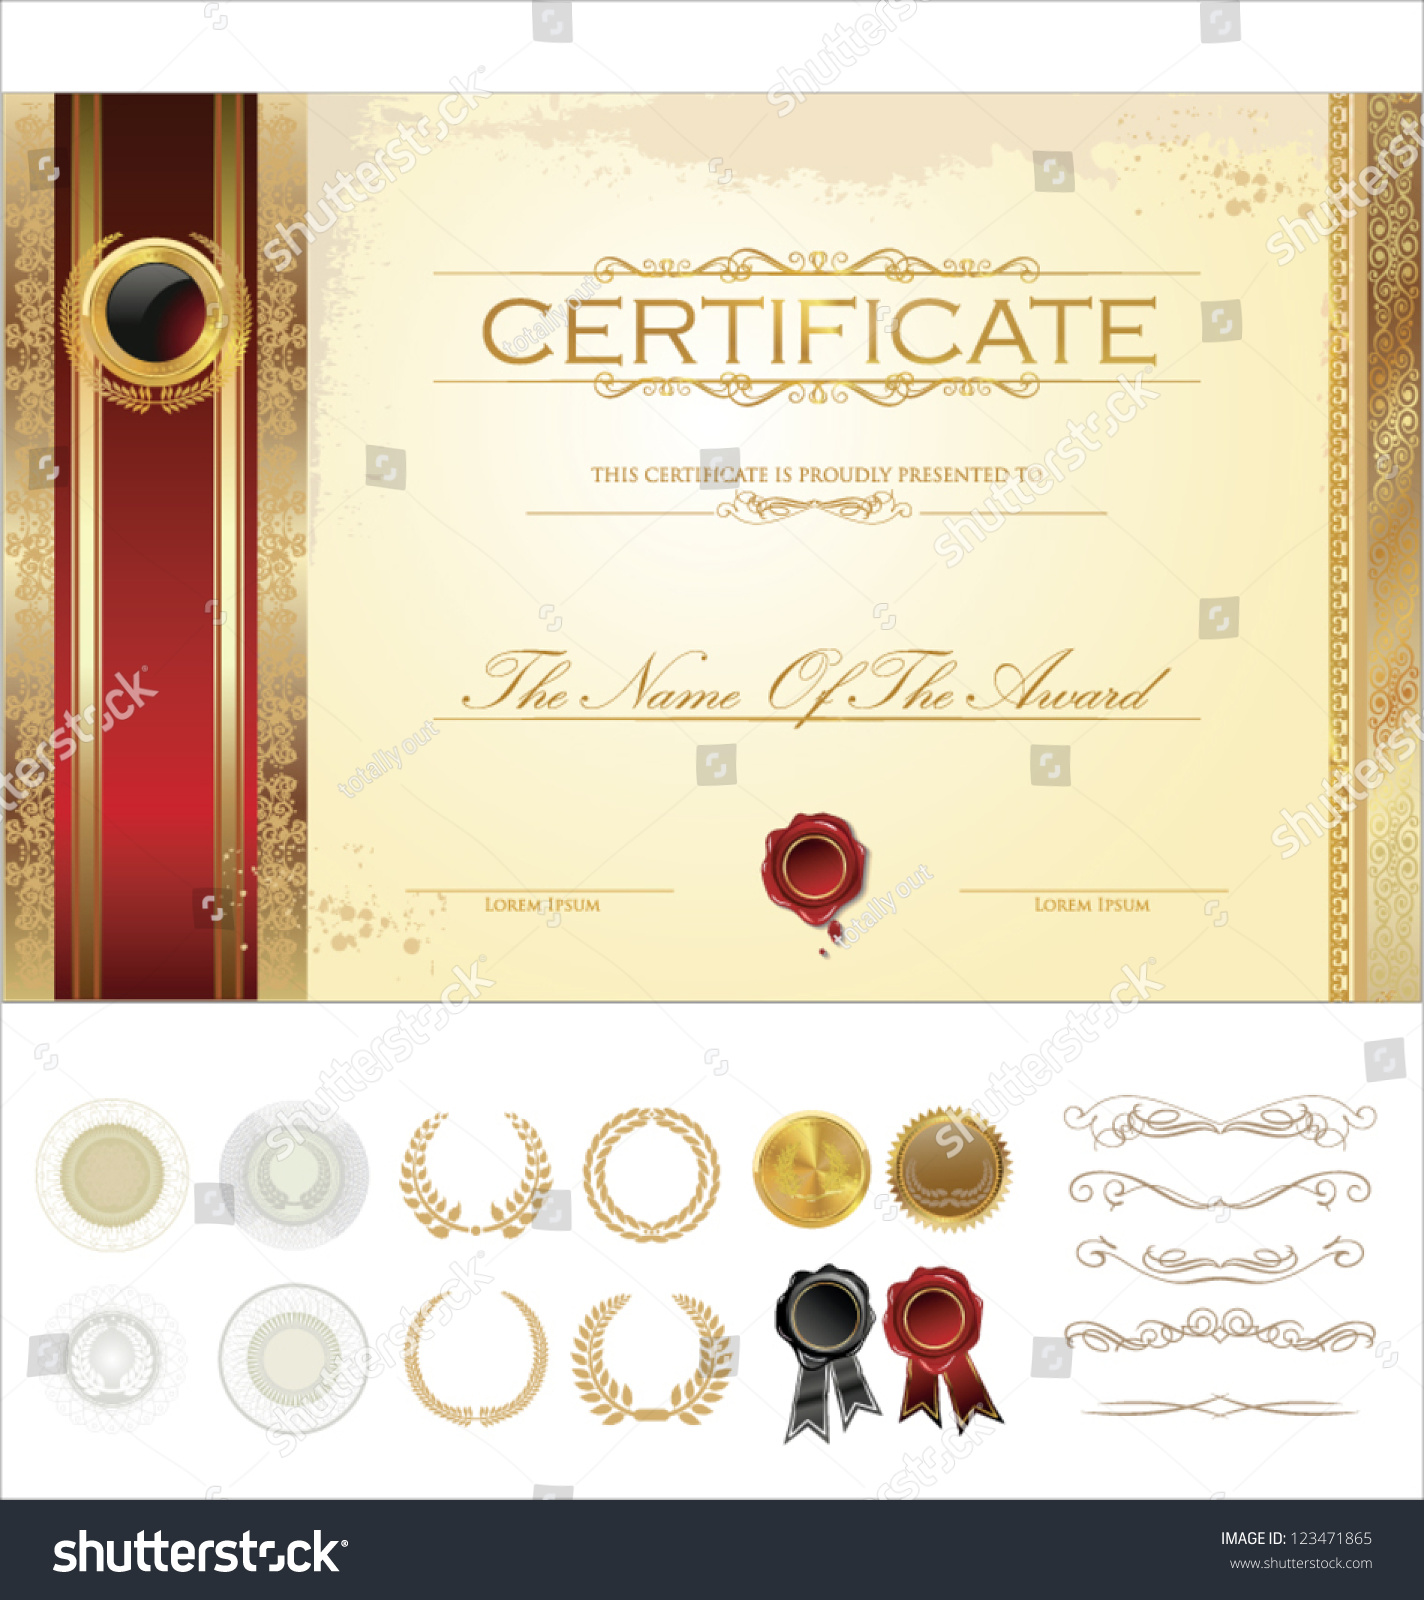 luxury certificate template stock vector shutterstock luxury certificate template